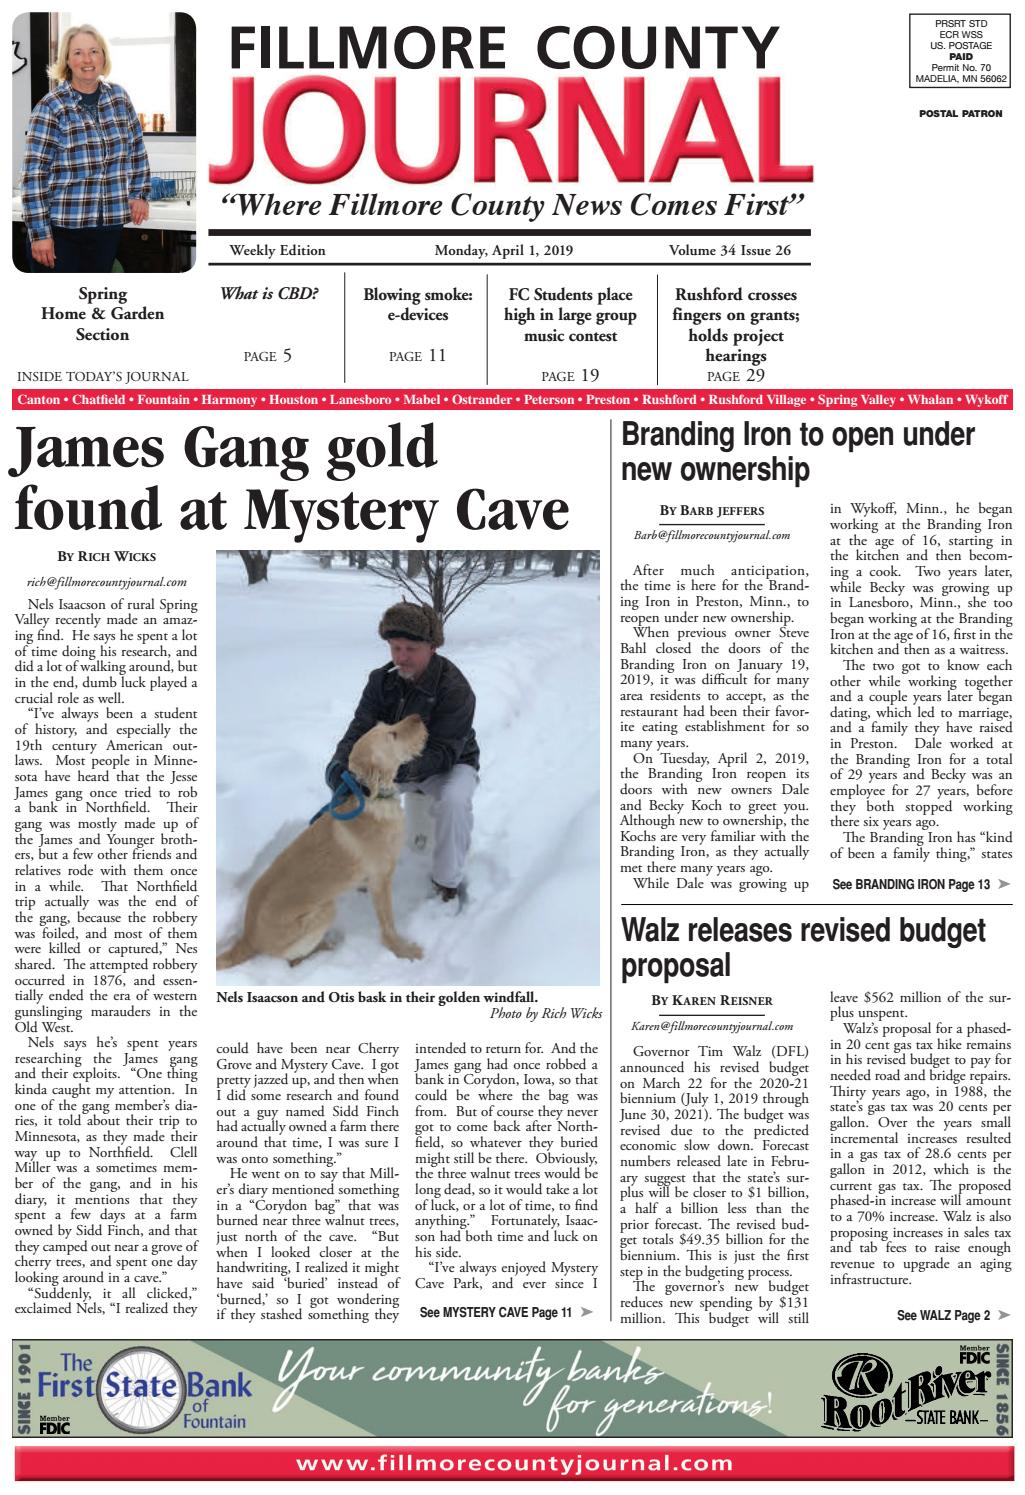 Fillmore County Journal 412019 By Jason Sethre Issuu